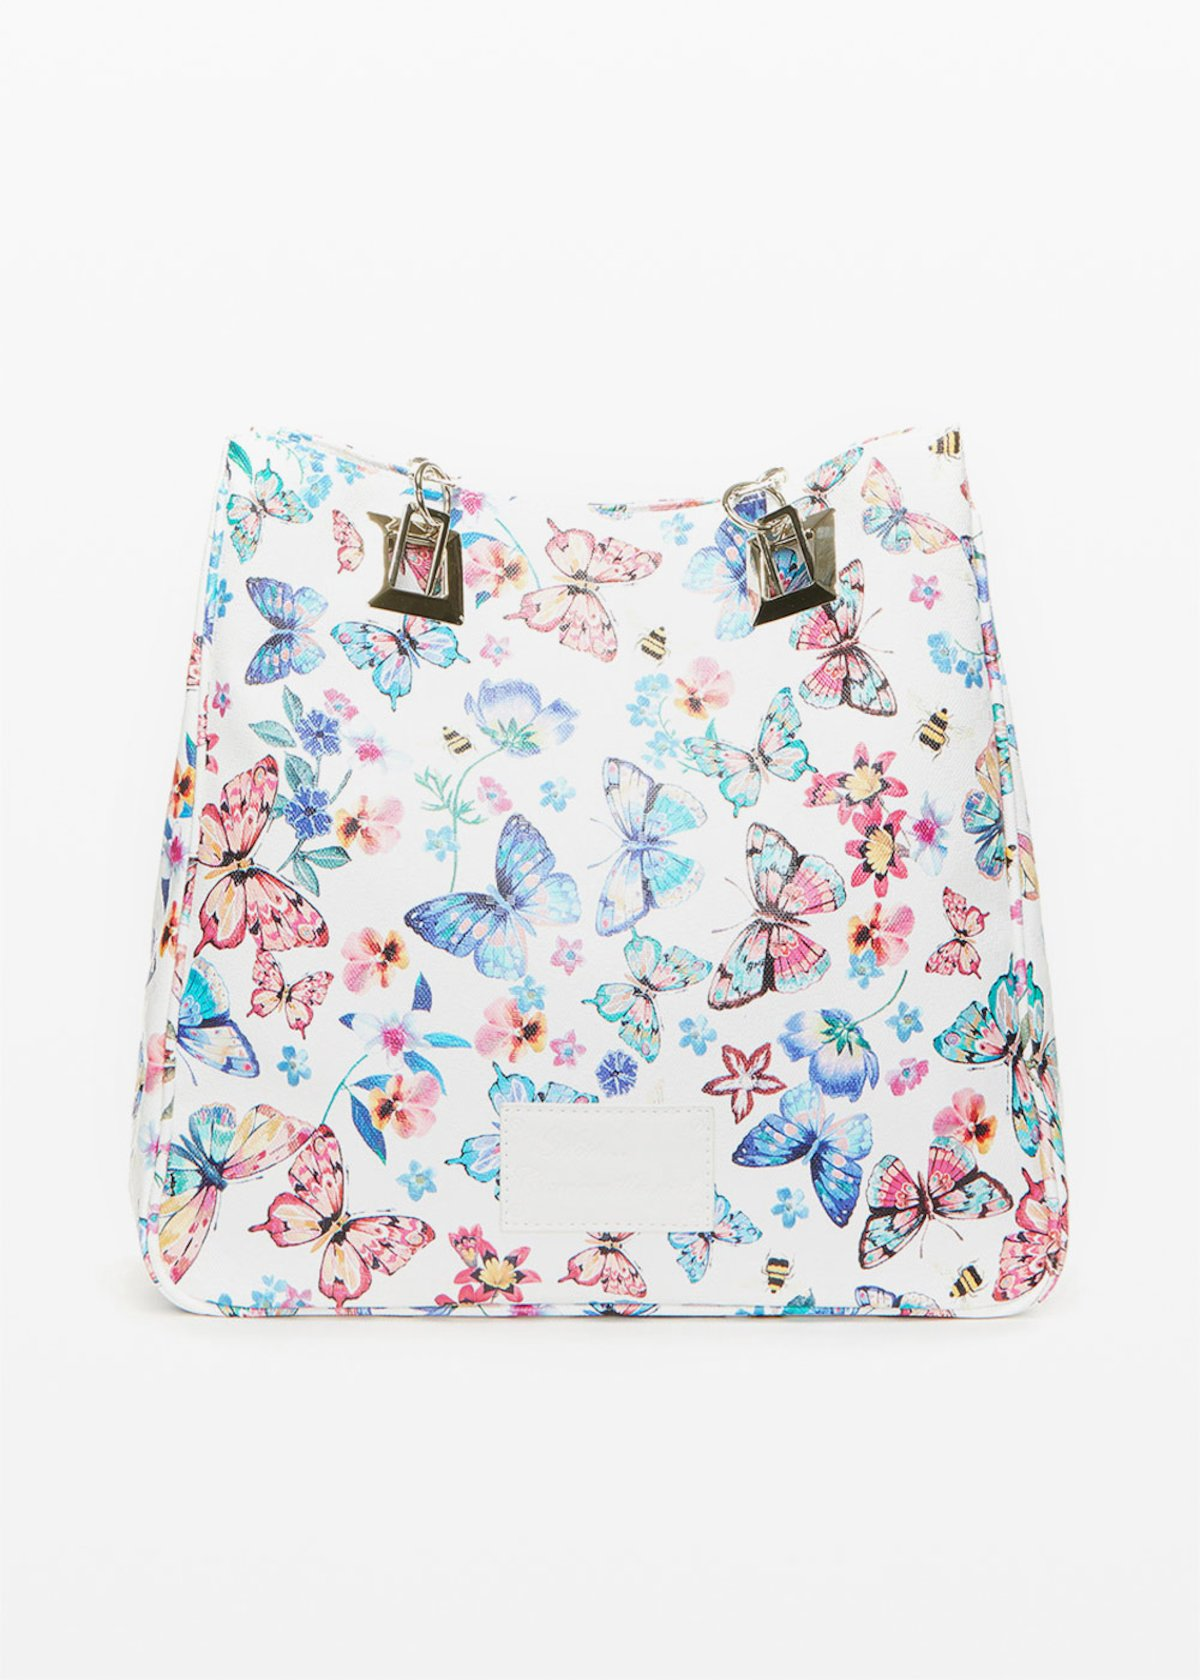 Minibufl faux leather shopping bag butter-flowers print - White Fantasia